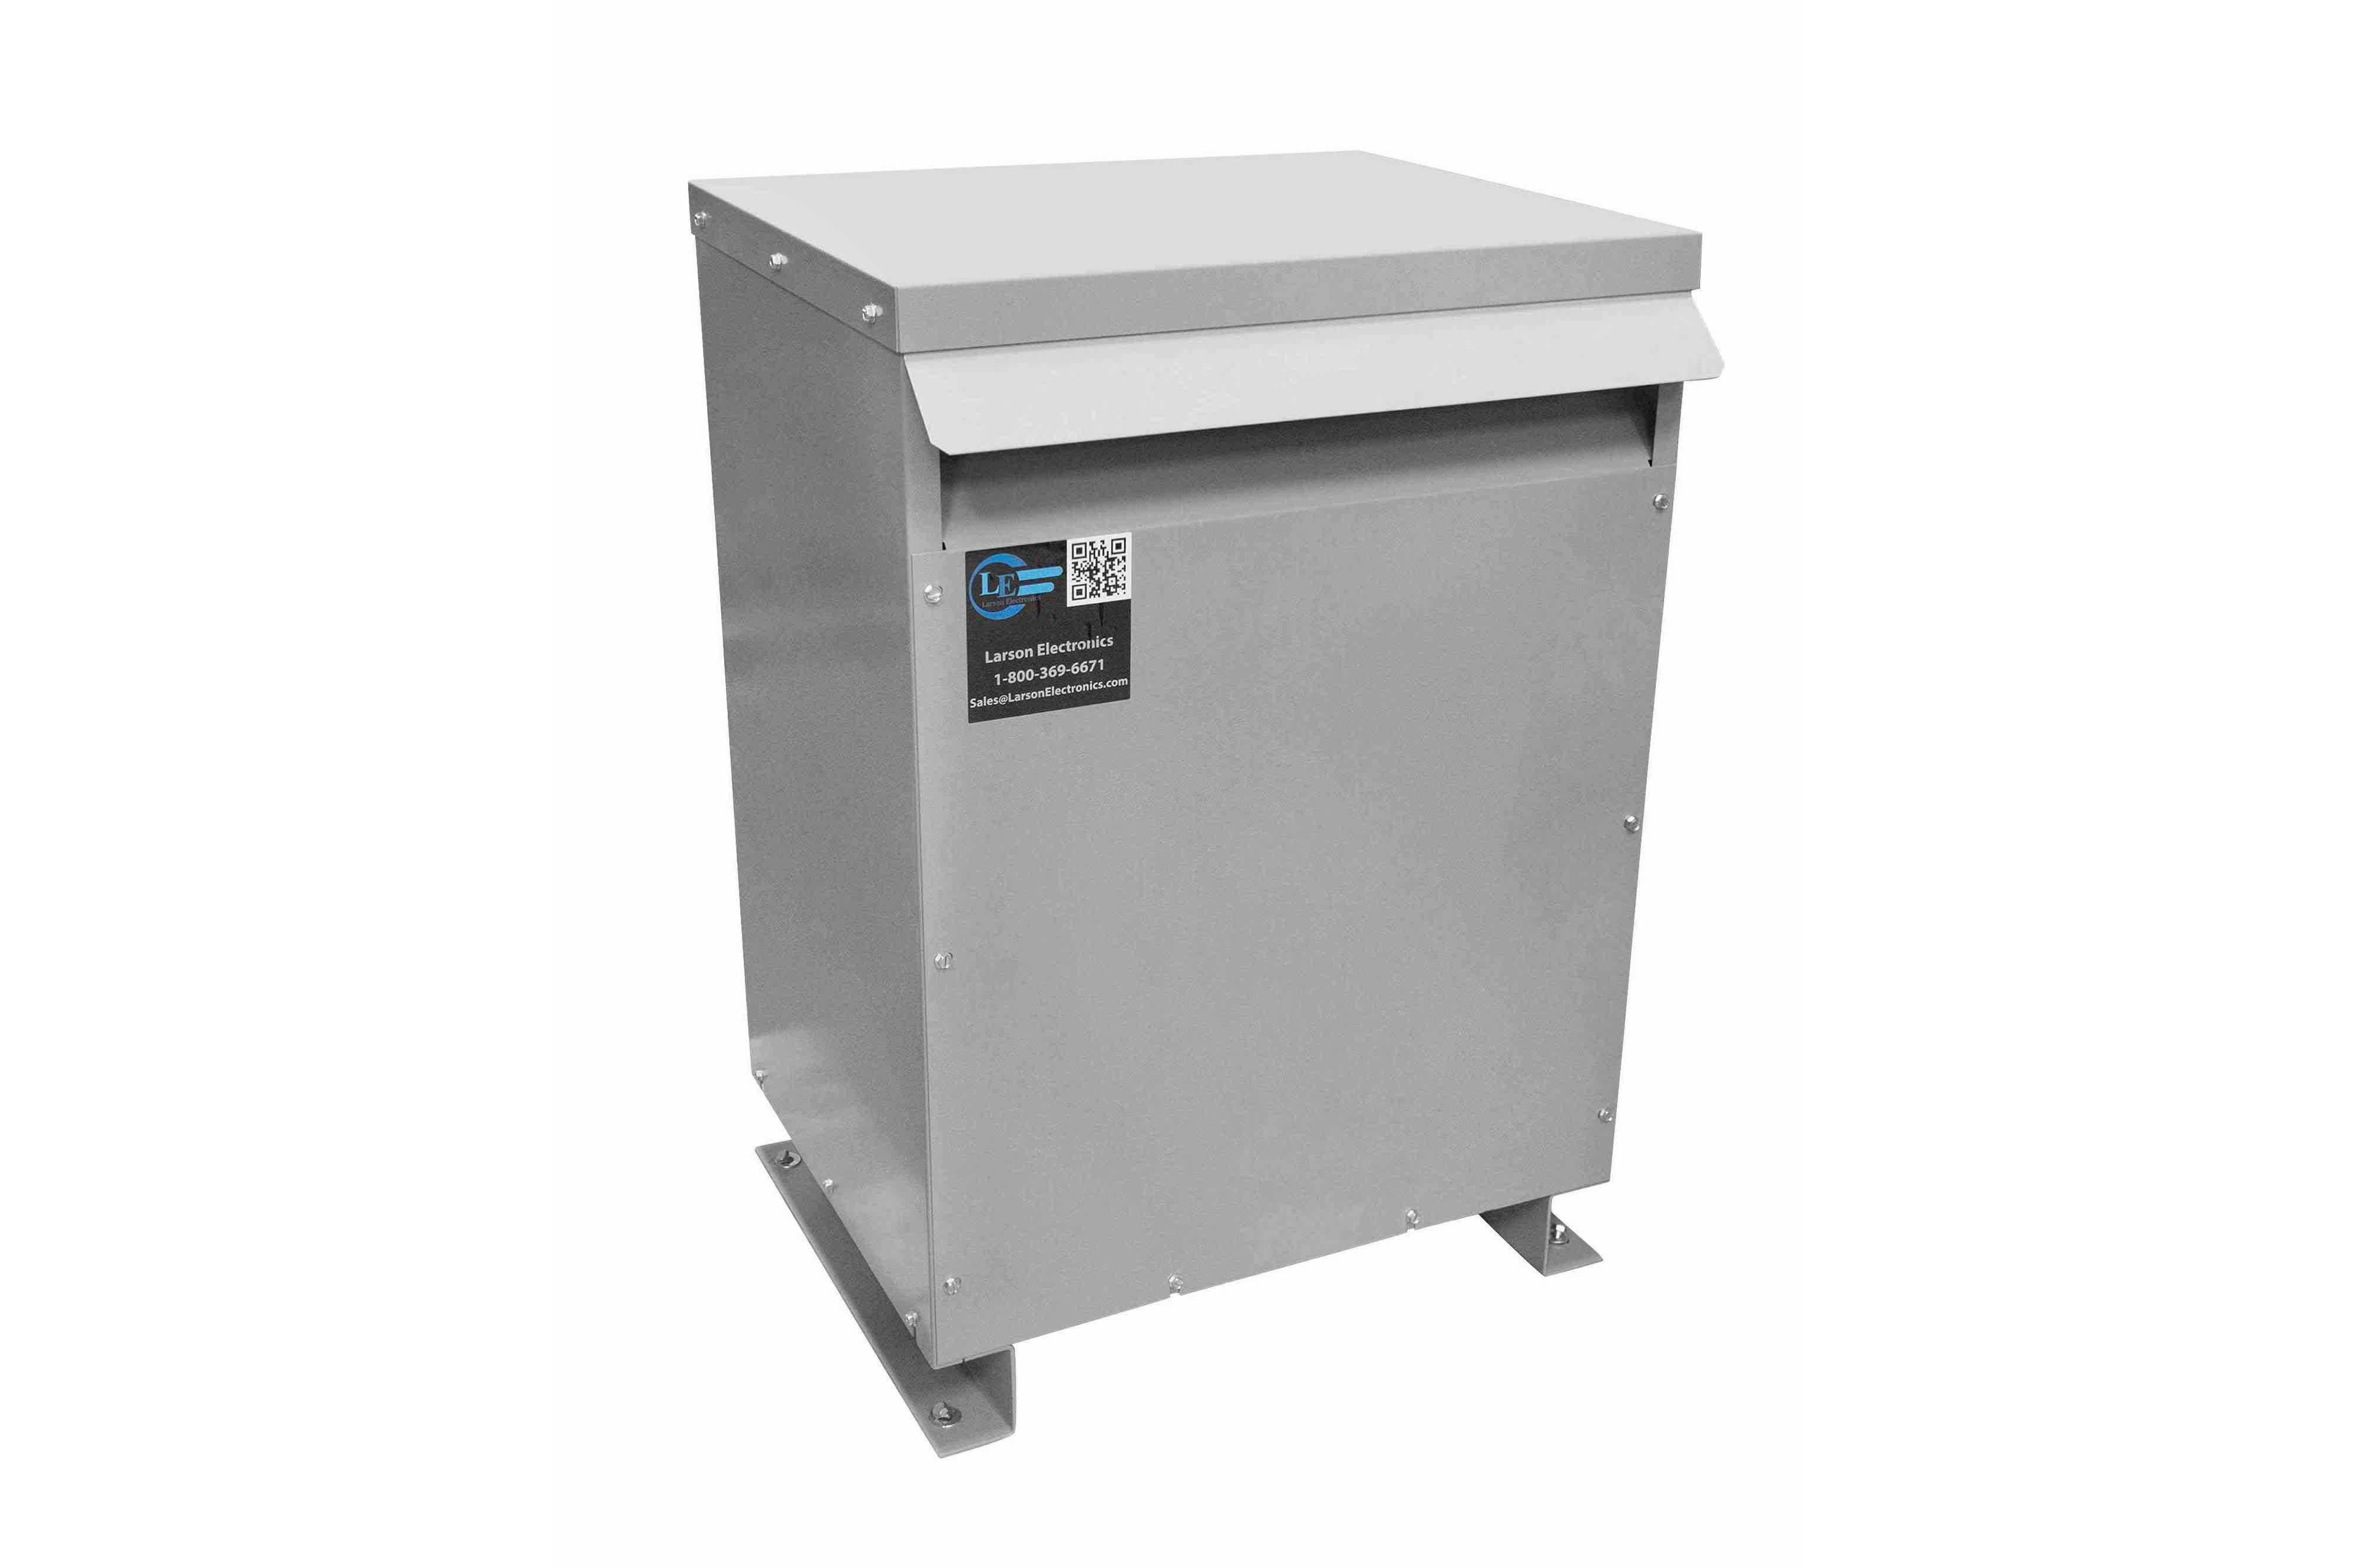 45 kVA 3PH Isolation Transformer, 380V Delta Primary, 208V Delta Secondary, N3R, Ventilated, 60 Hz